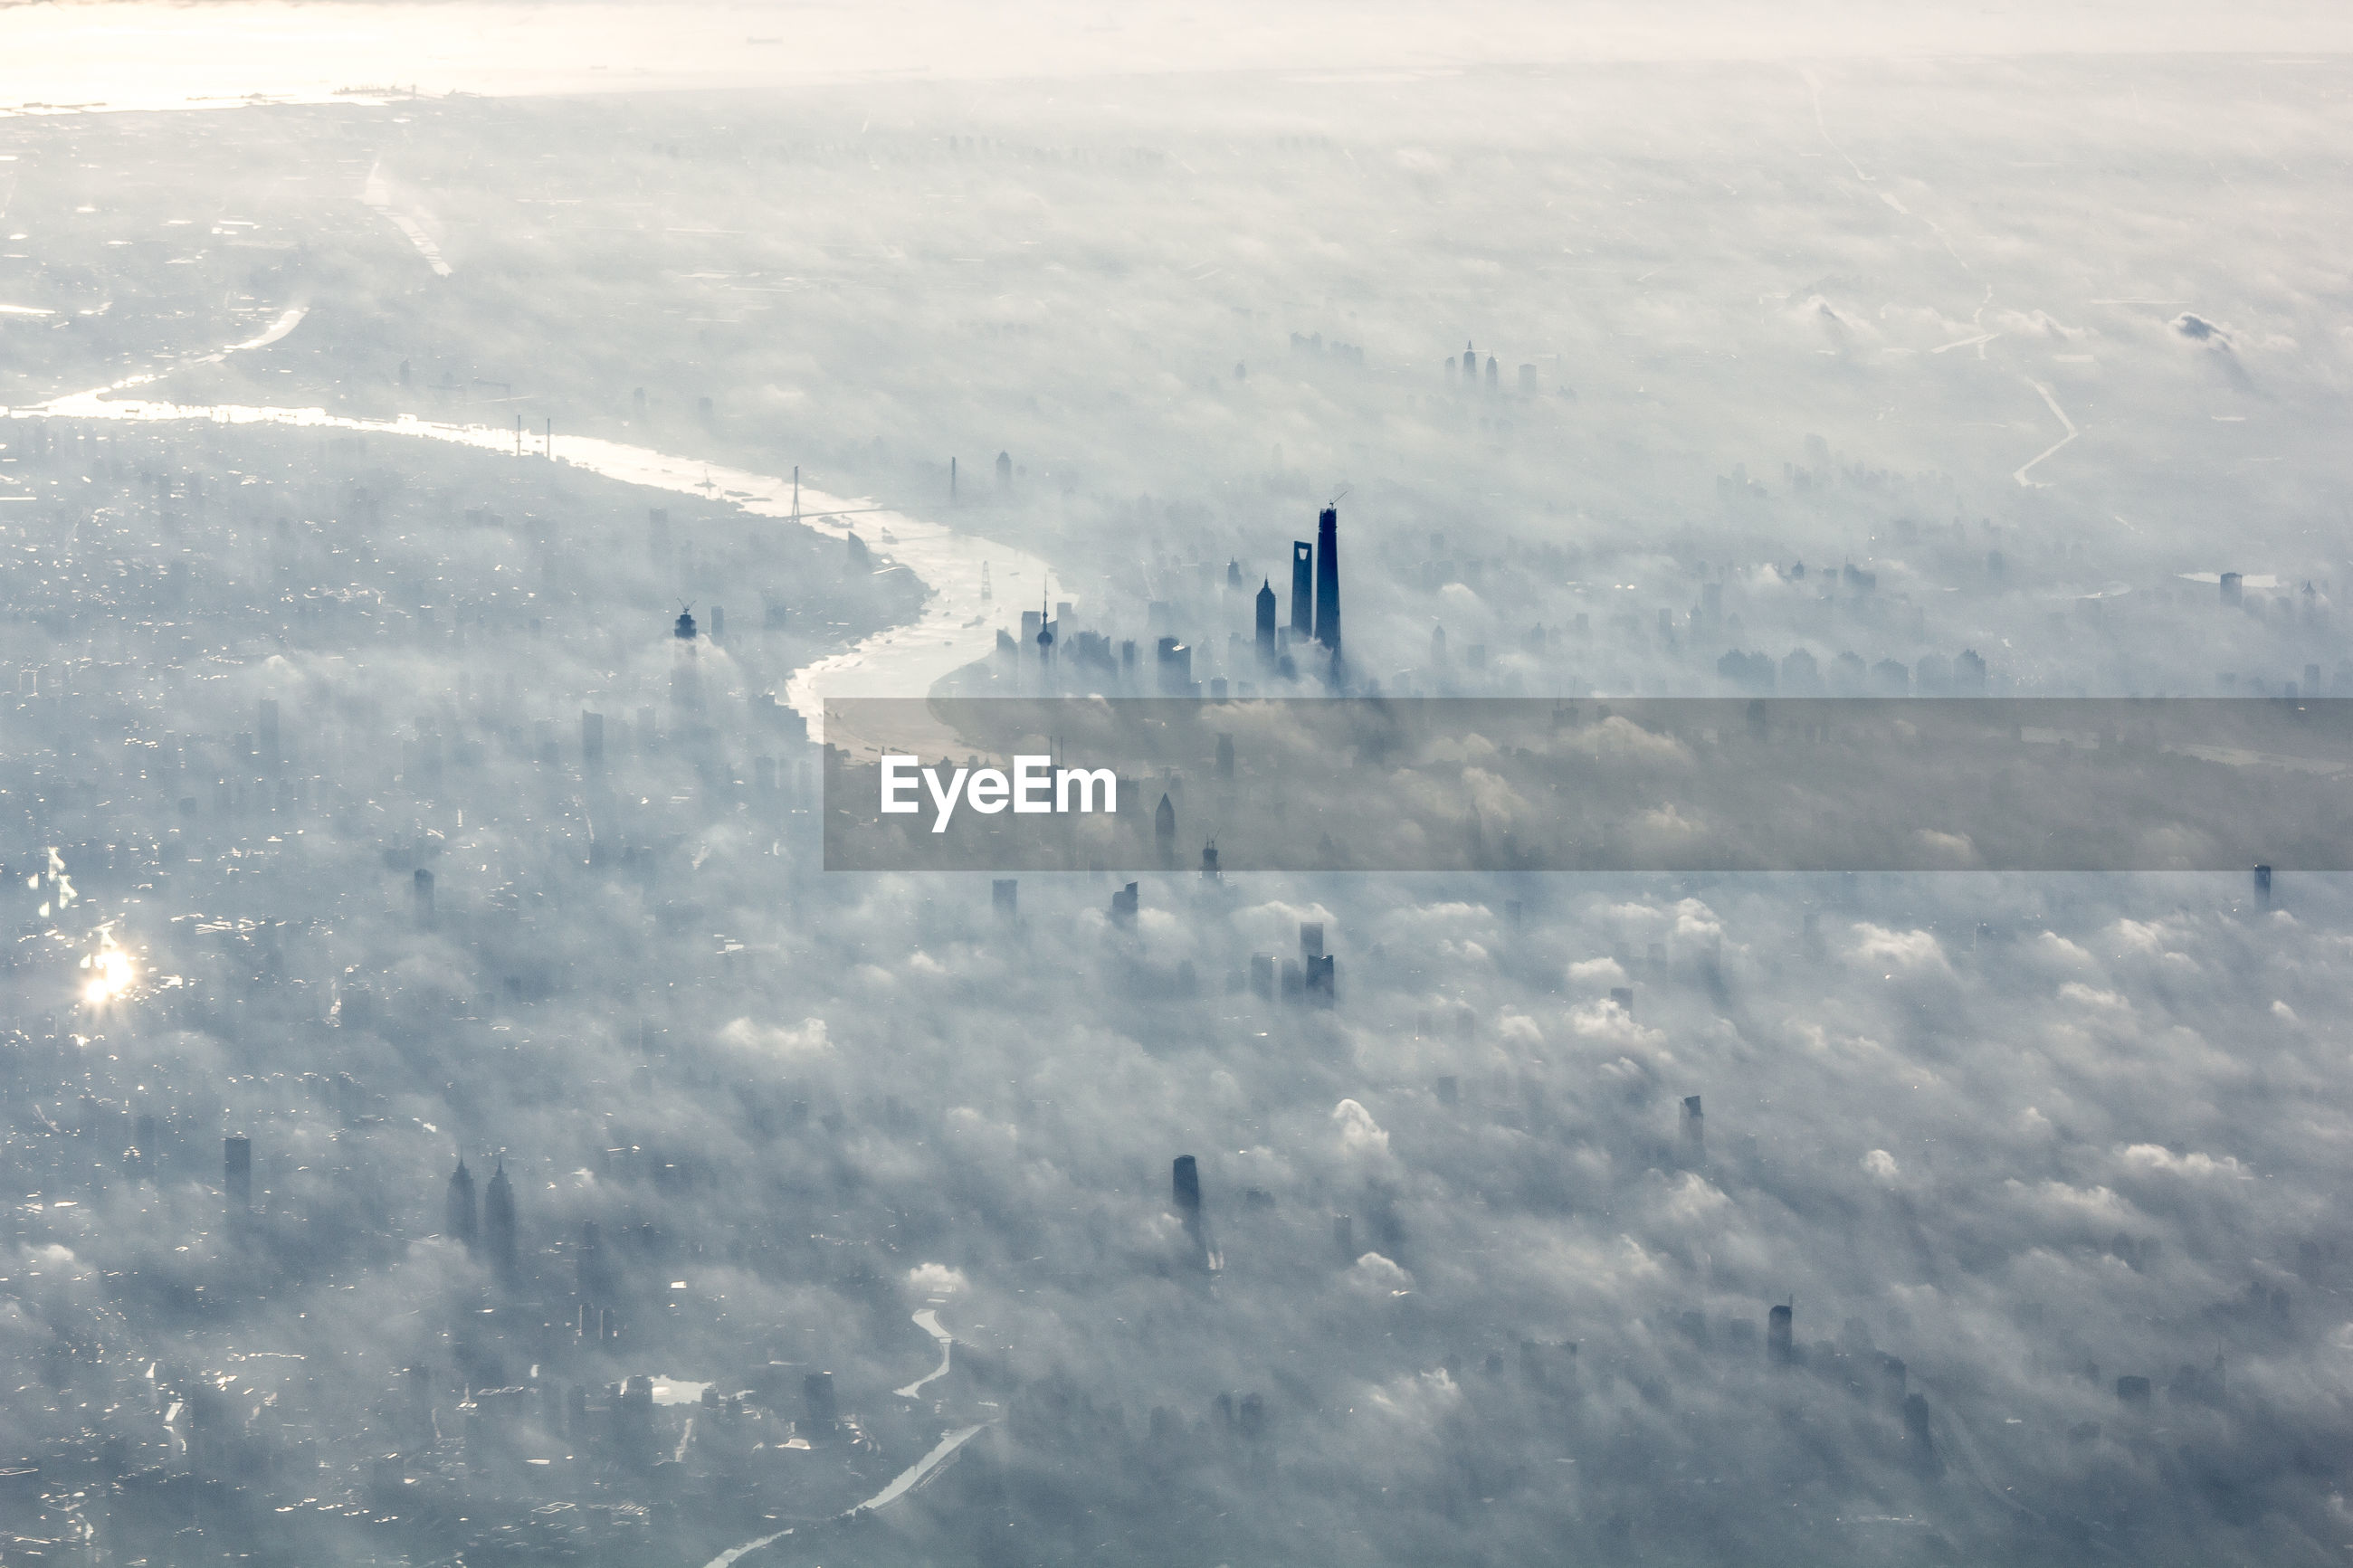 Aerial view of cityscape during foggy weather